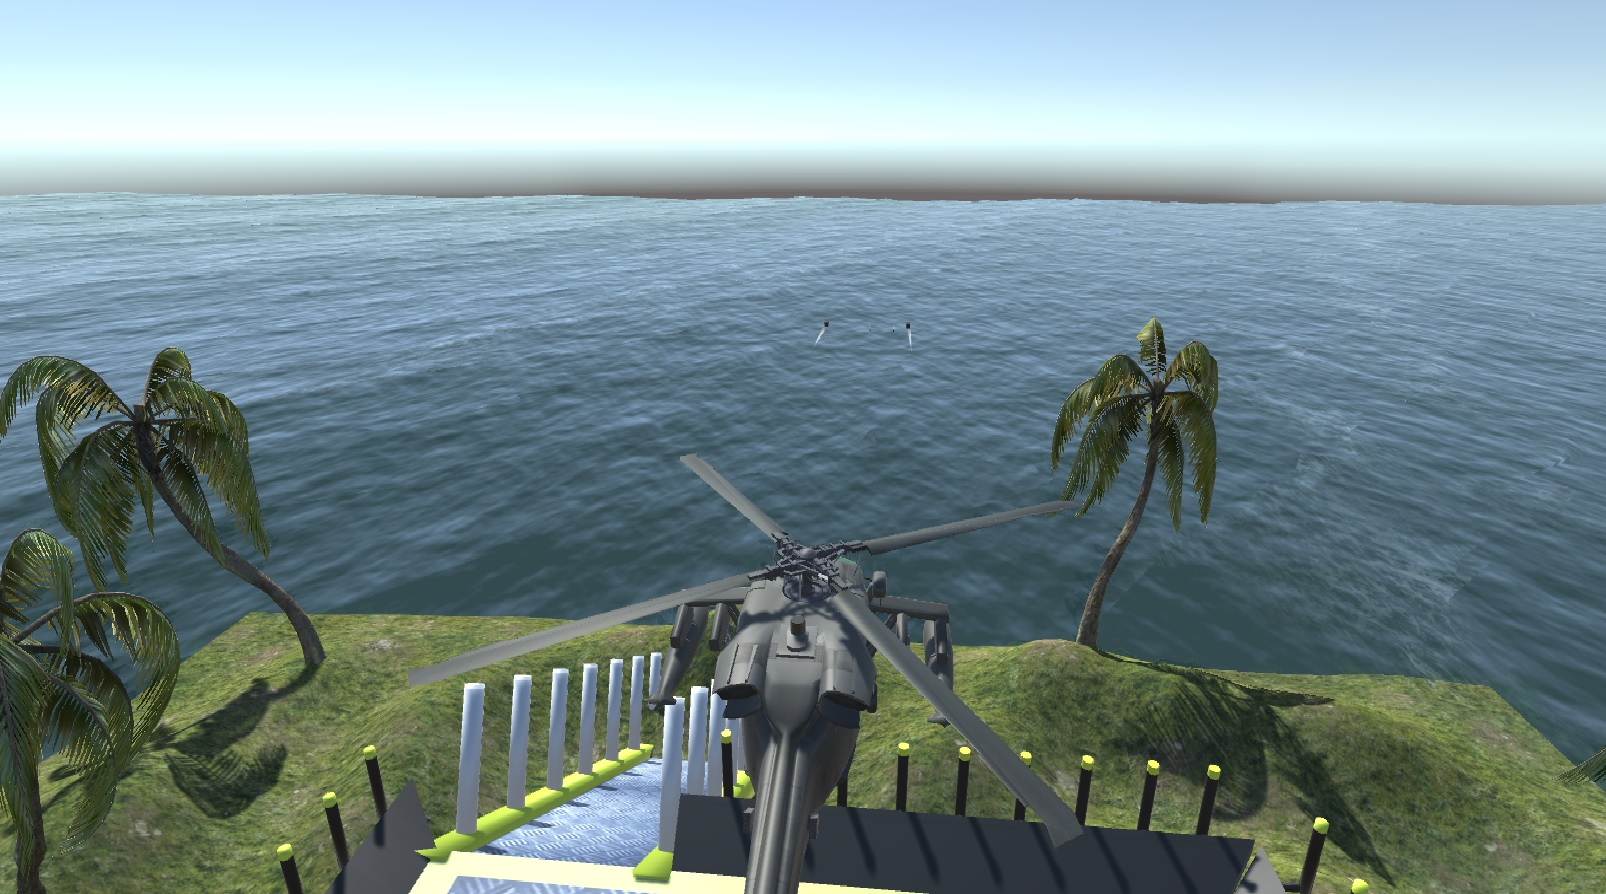 Tuto helicoptere 2 unity3D